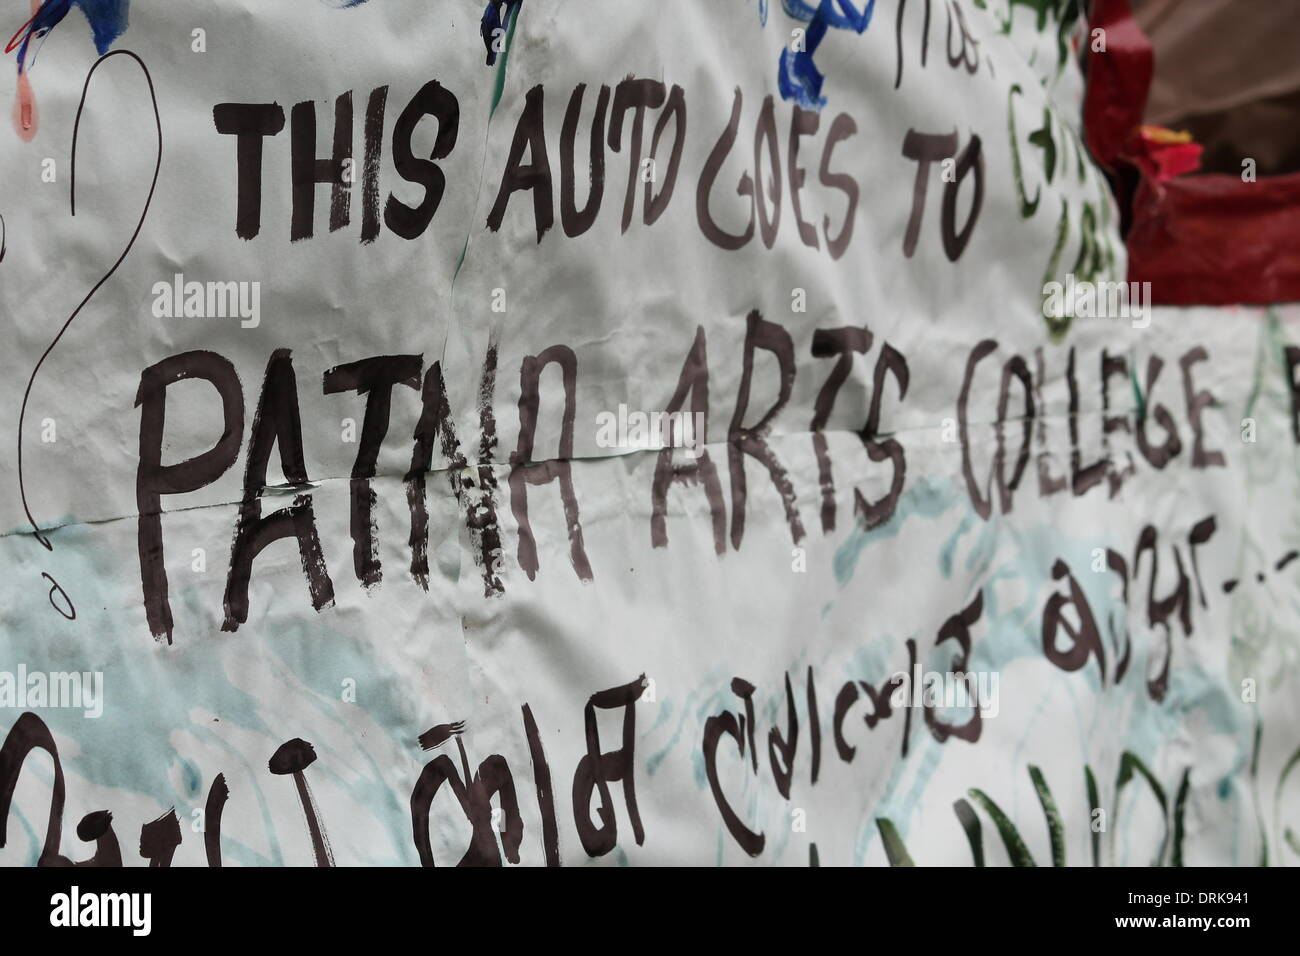 Patna College of Arts and Crafts, Chajju Bagh, Patna, Bihar, India, 28th January 2014. Students and visitors written comments on the body of an Auto at the campus of the Patna College of Arts and Crafts at Tuesday winter morning on the occasion of final day of 75th Foundation Day of the College. The exhibition showcased many Paintings, Photography and Sculptures created by the budding students. Visitors both domestic as well as foreigner enjoyed the Art works. Students danced, sang song and celebrated togetherness in a gala function. In spite of great Art work the Artists do not have any marke - Stock Image